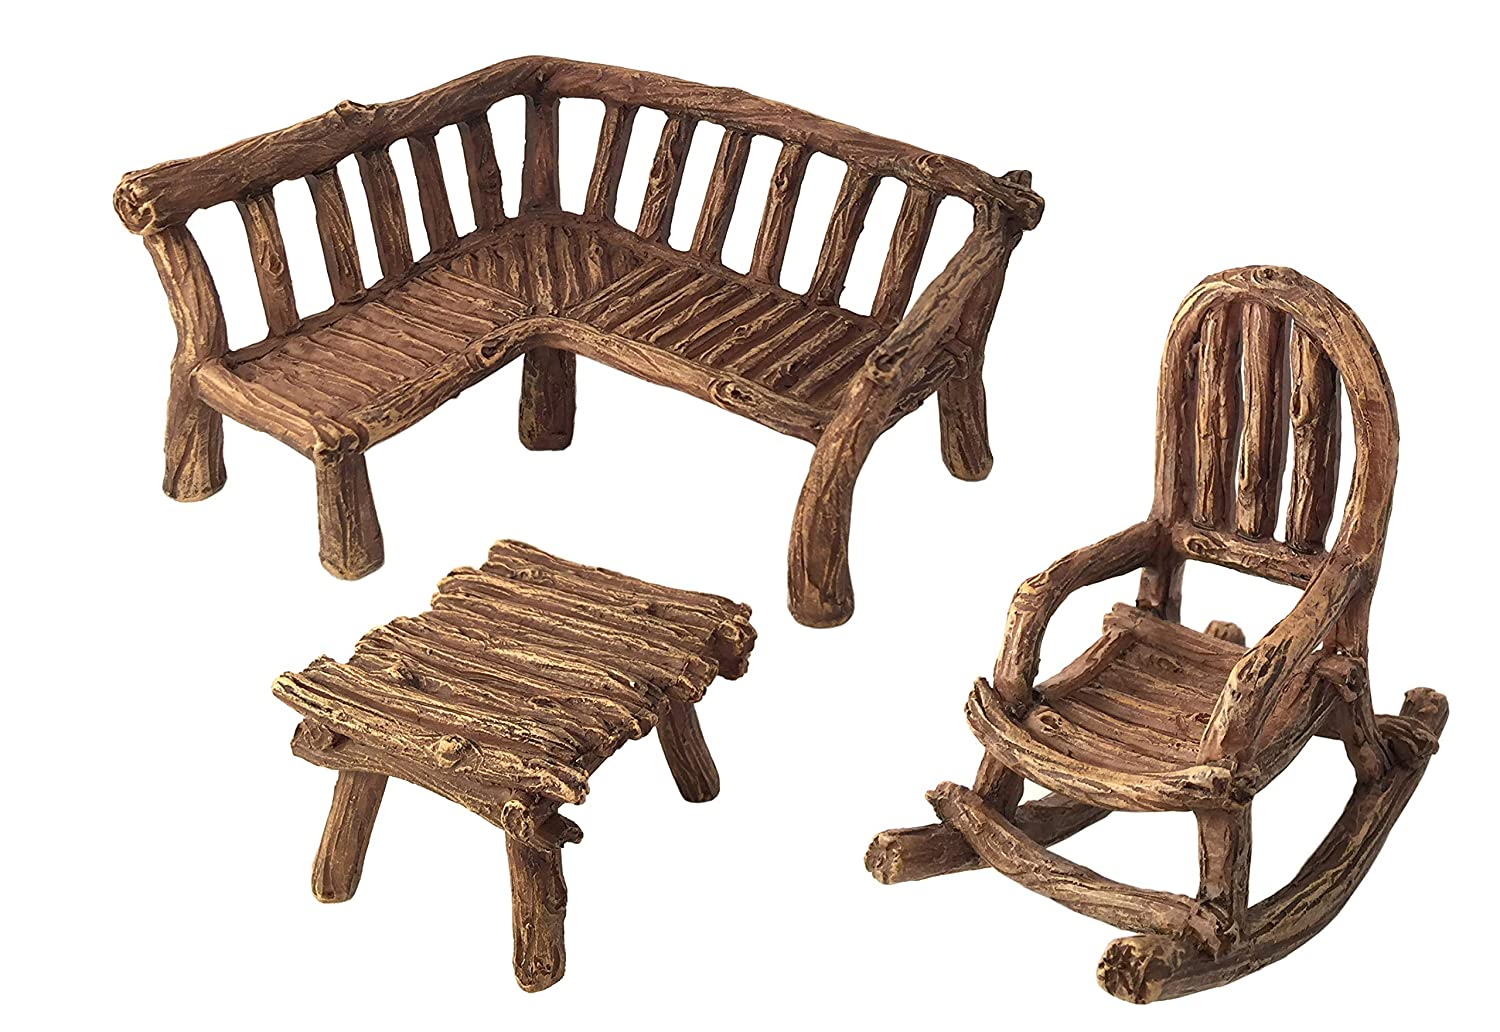 GlitZGlam Miniature Fairy Garden Furniture 3-Piece: Rustic Wood Bench, Rocking Chair and Miniature Table for The Garden Fairies